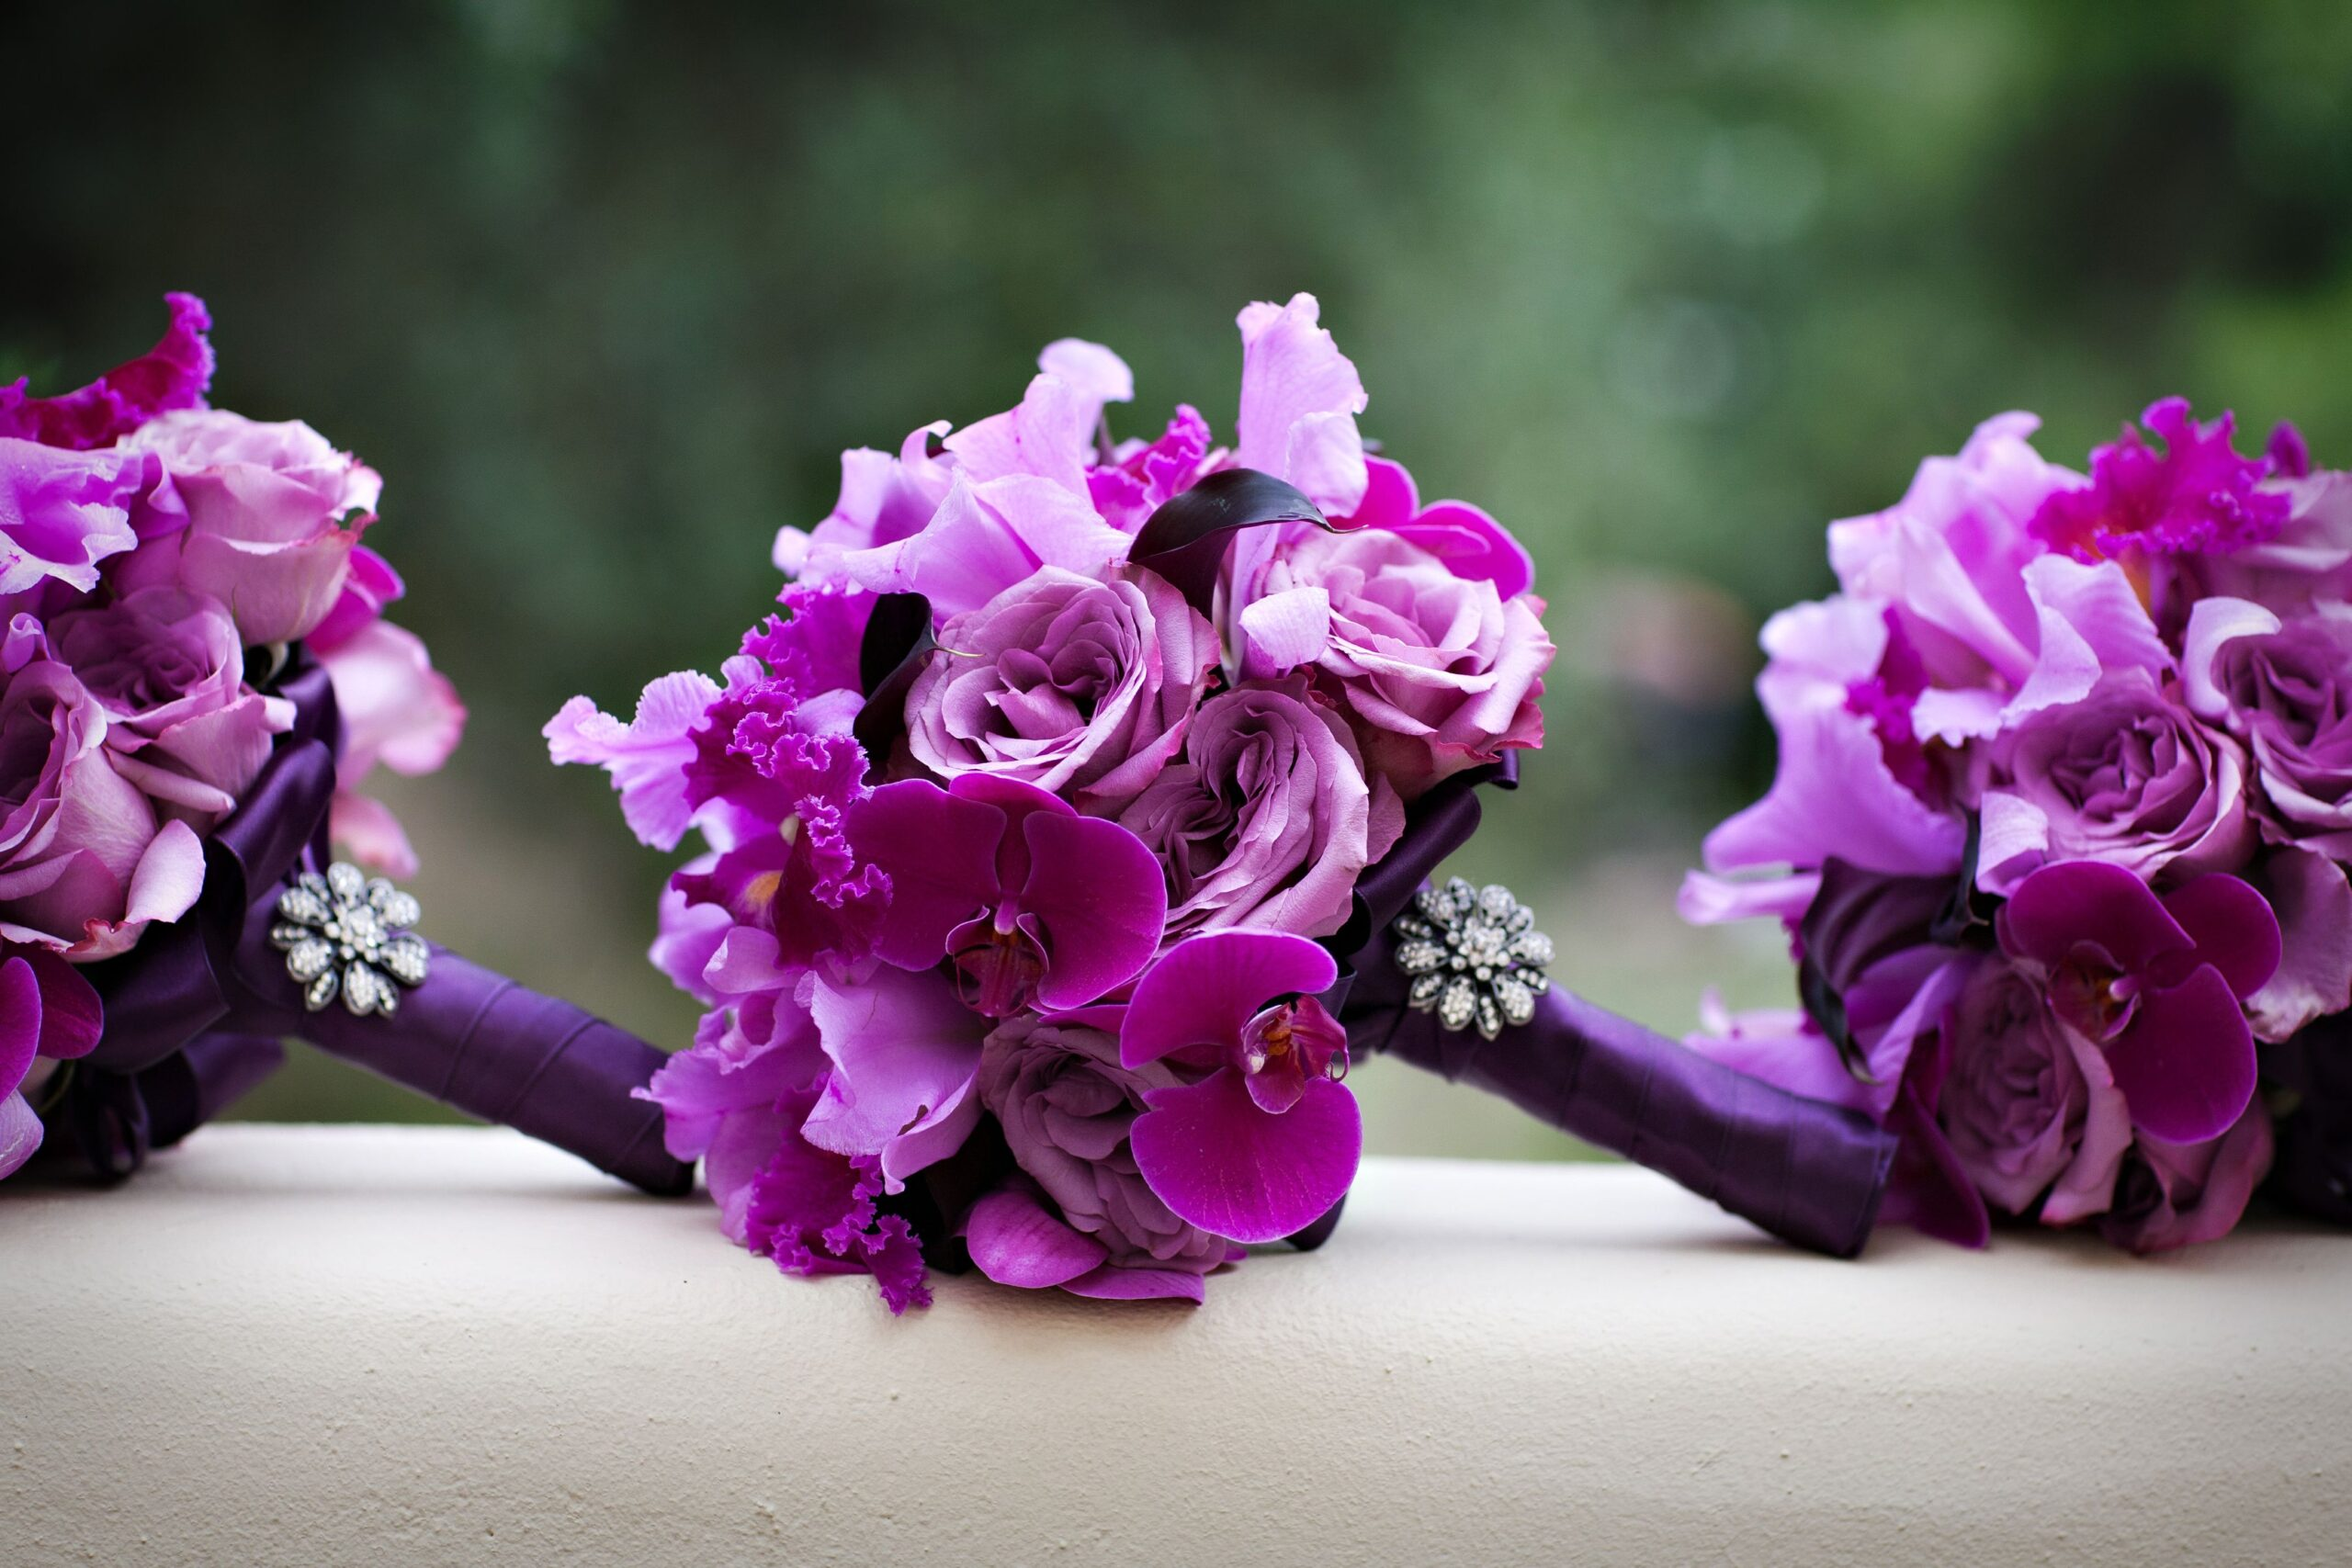 choose purple tulip wedding bouquets for your wedding 10 scaled - Choose Purple tulip wedding bouquets for Your Wedding